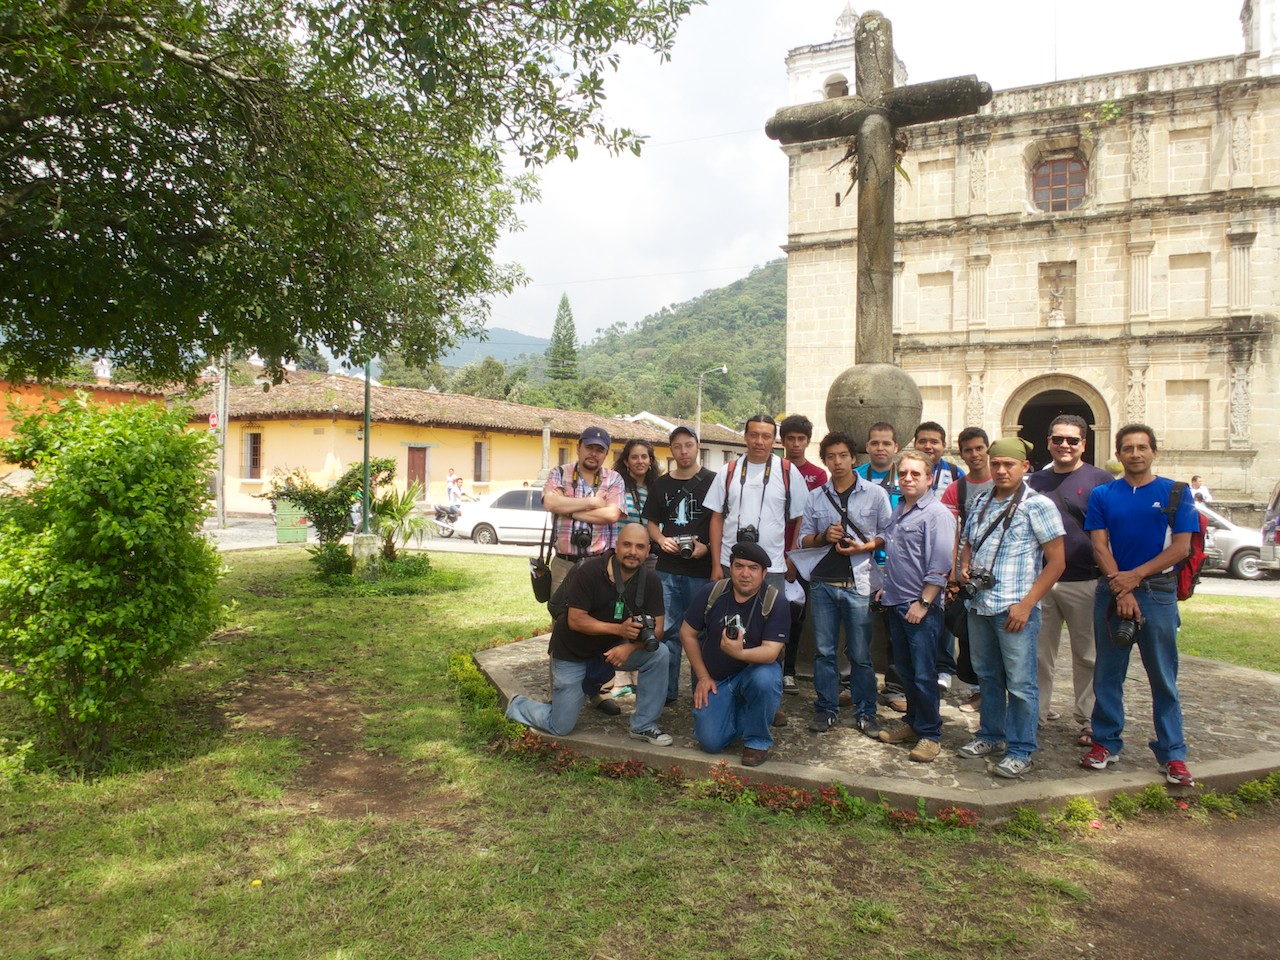 Photowalks in Antigua Guatemala by Rudy Giron